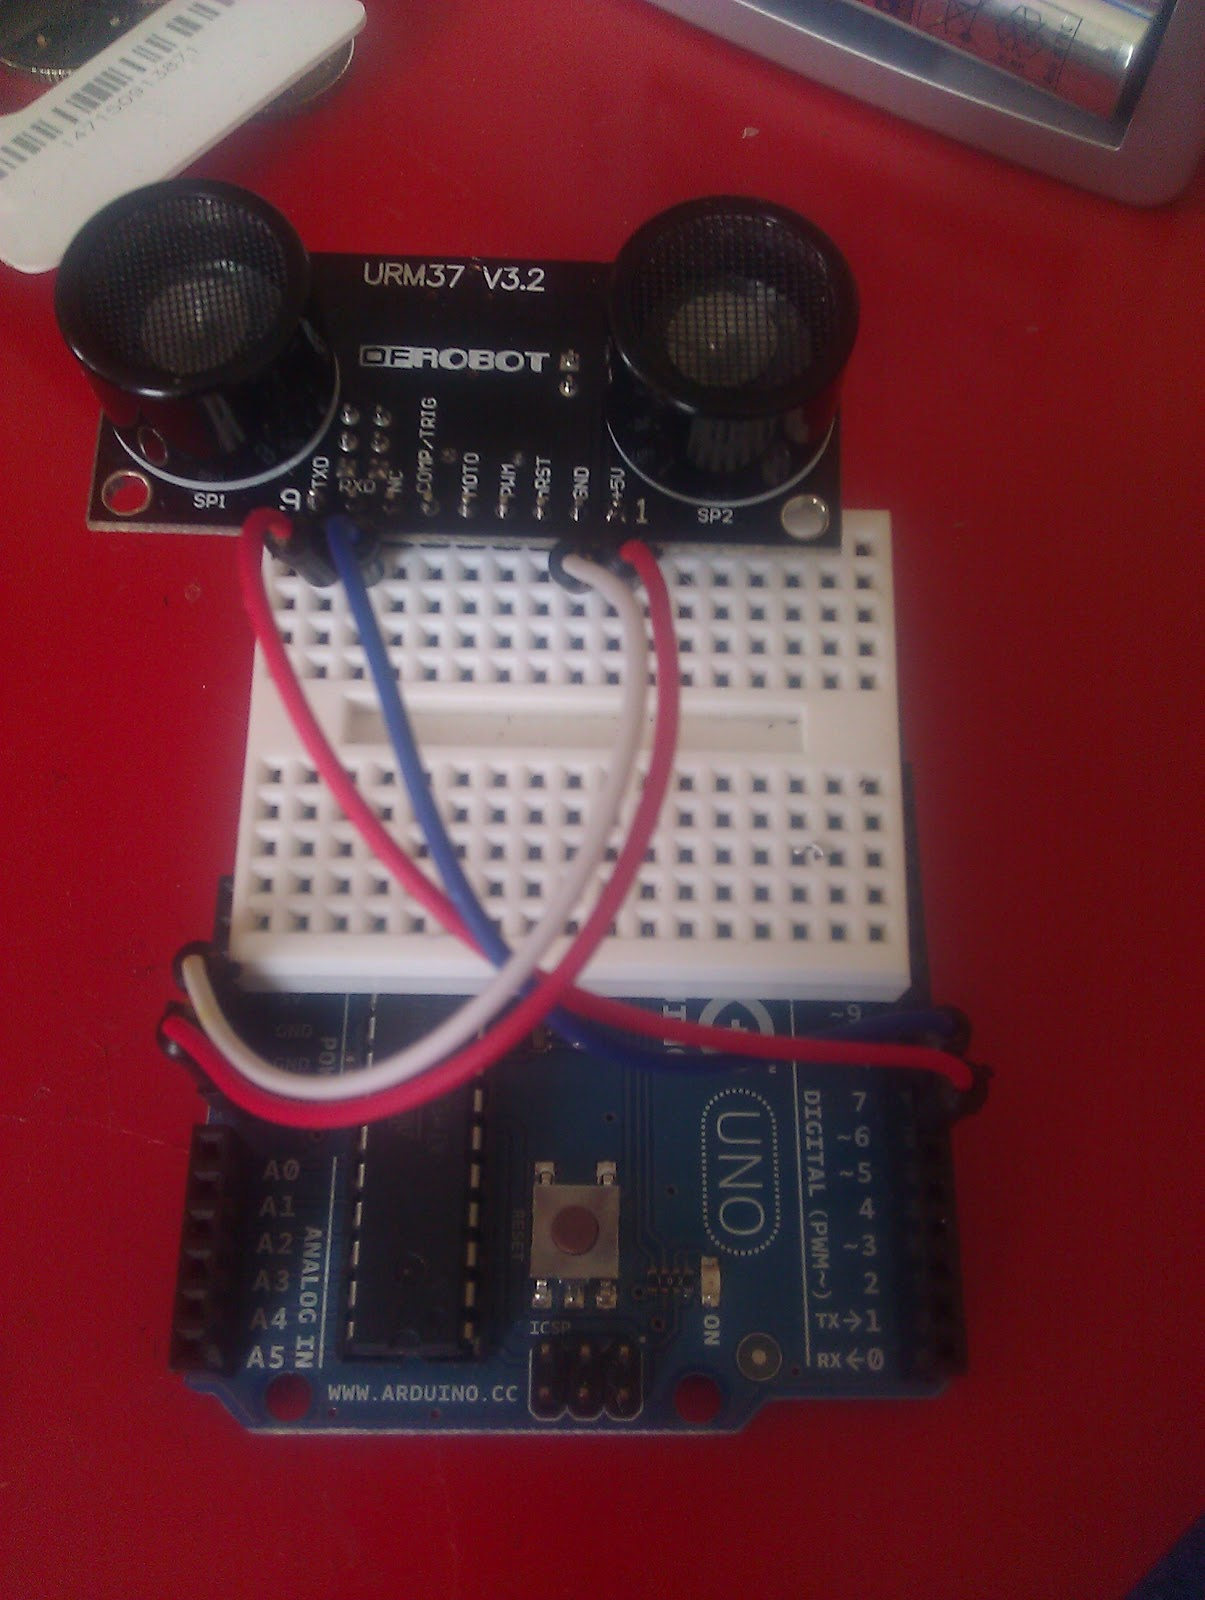 Using Infrared Proximity Sensors with Simulink and Arduino